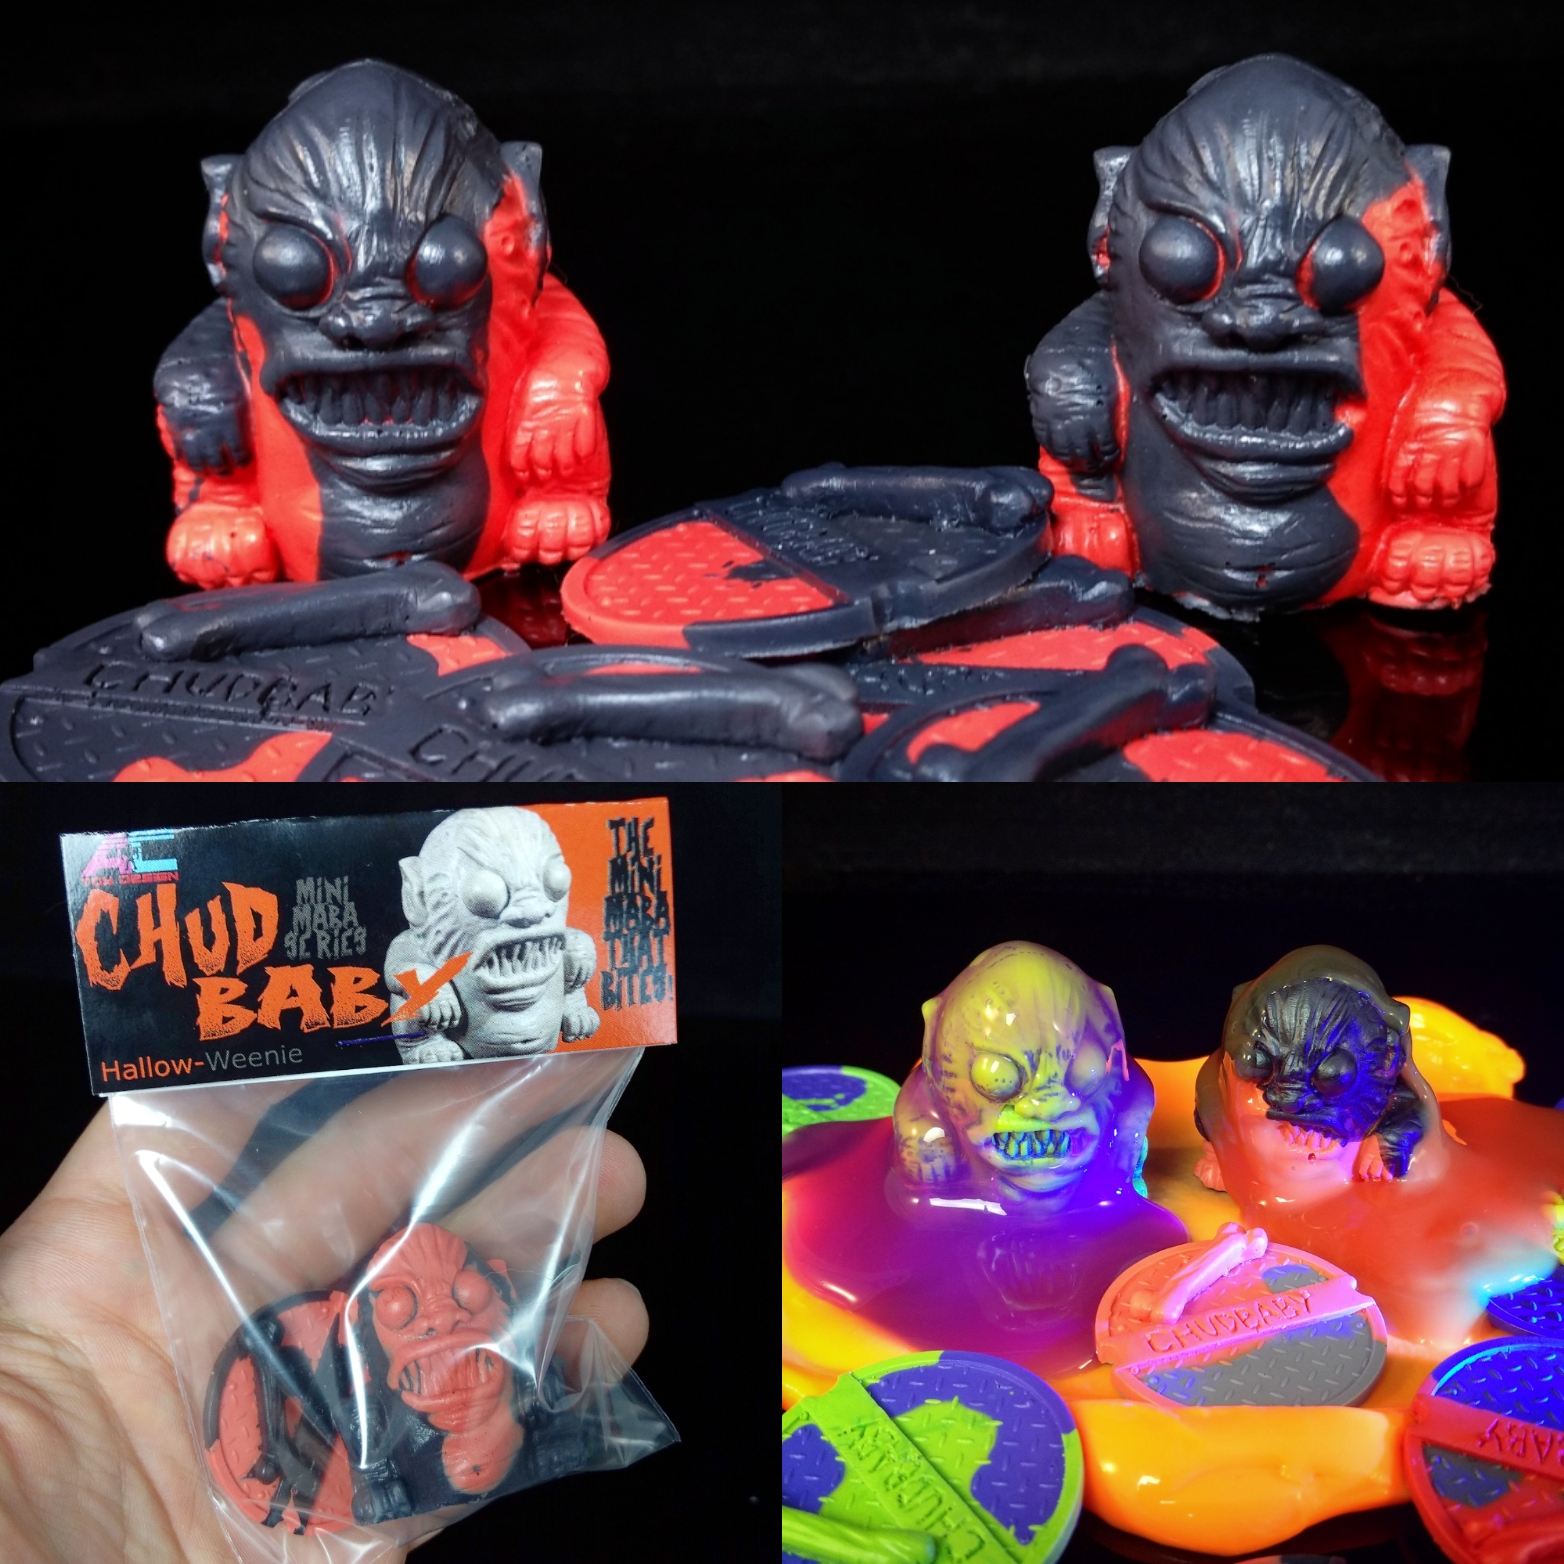 Chudbaby Resin Figure